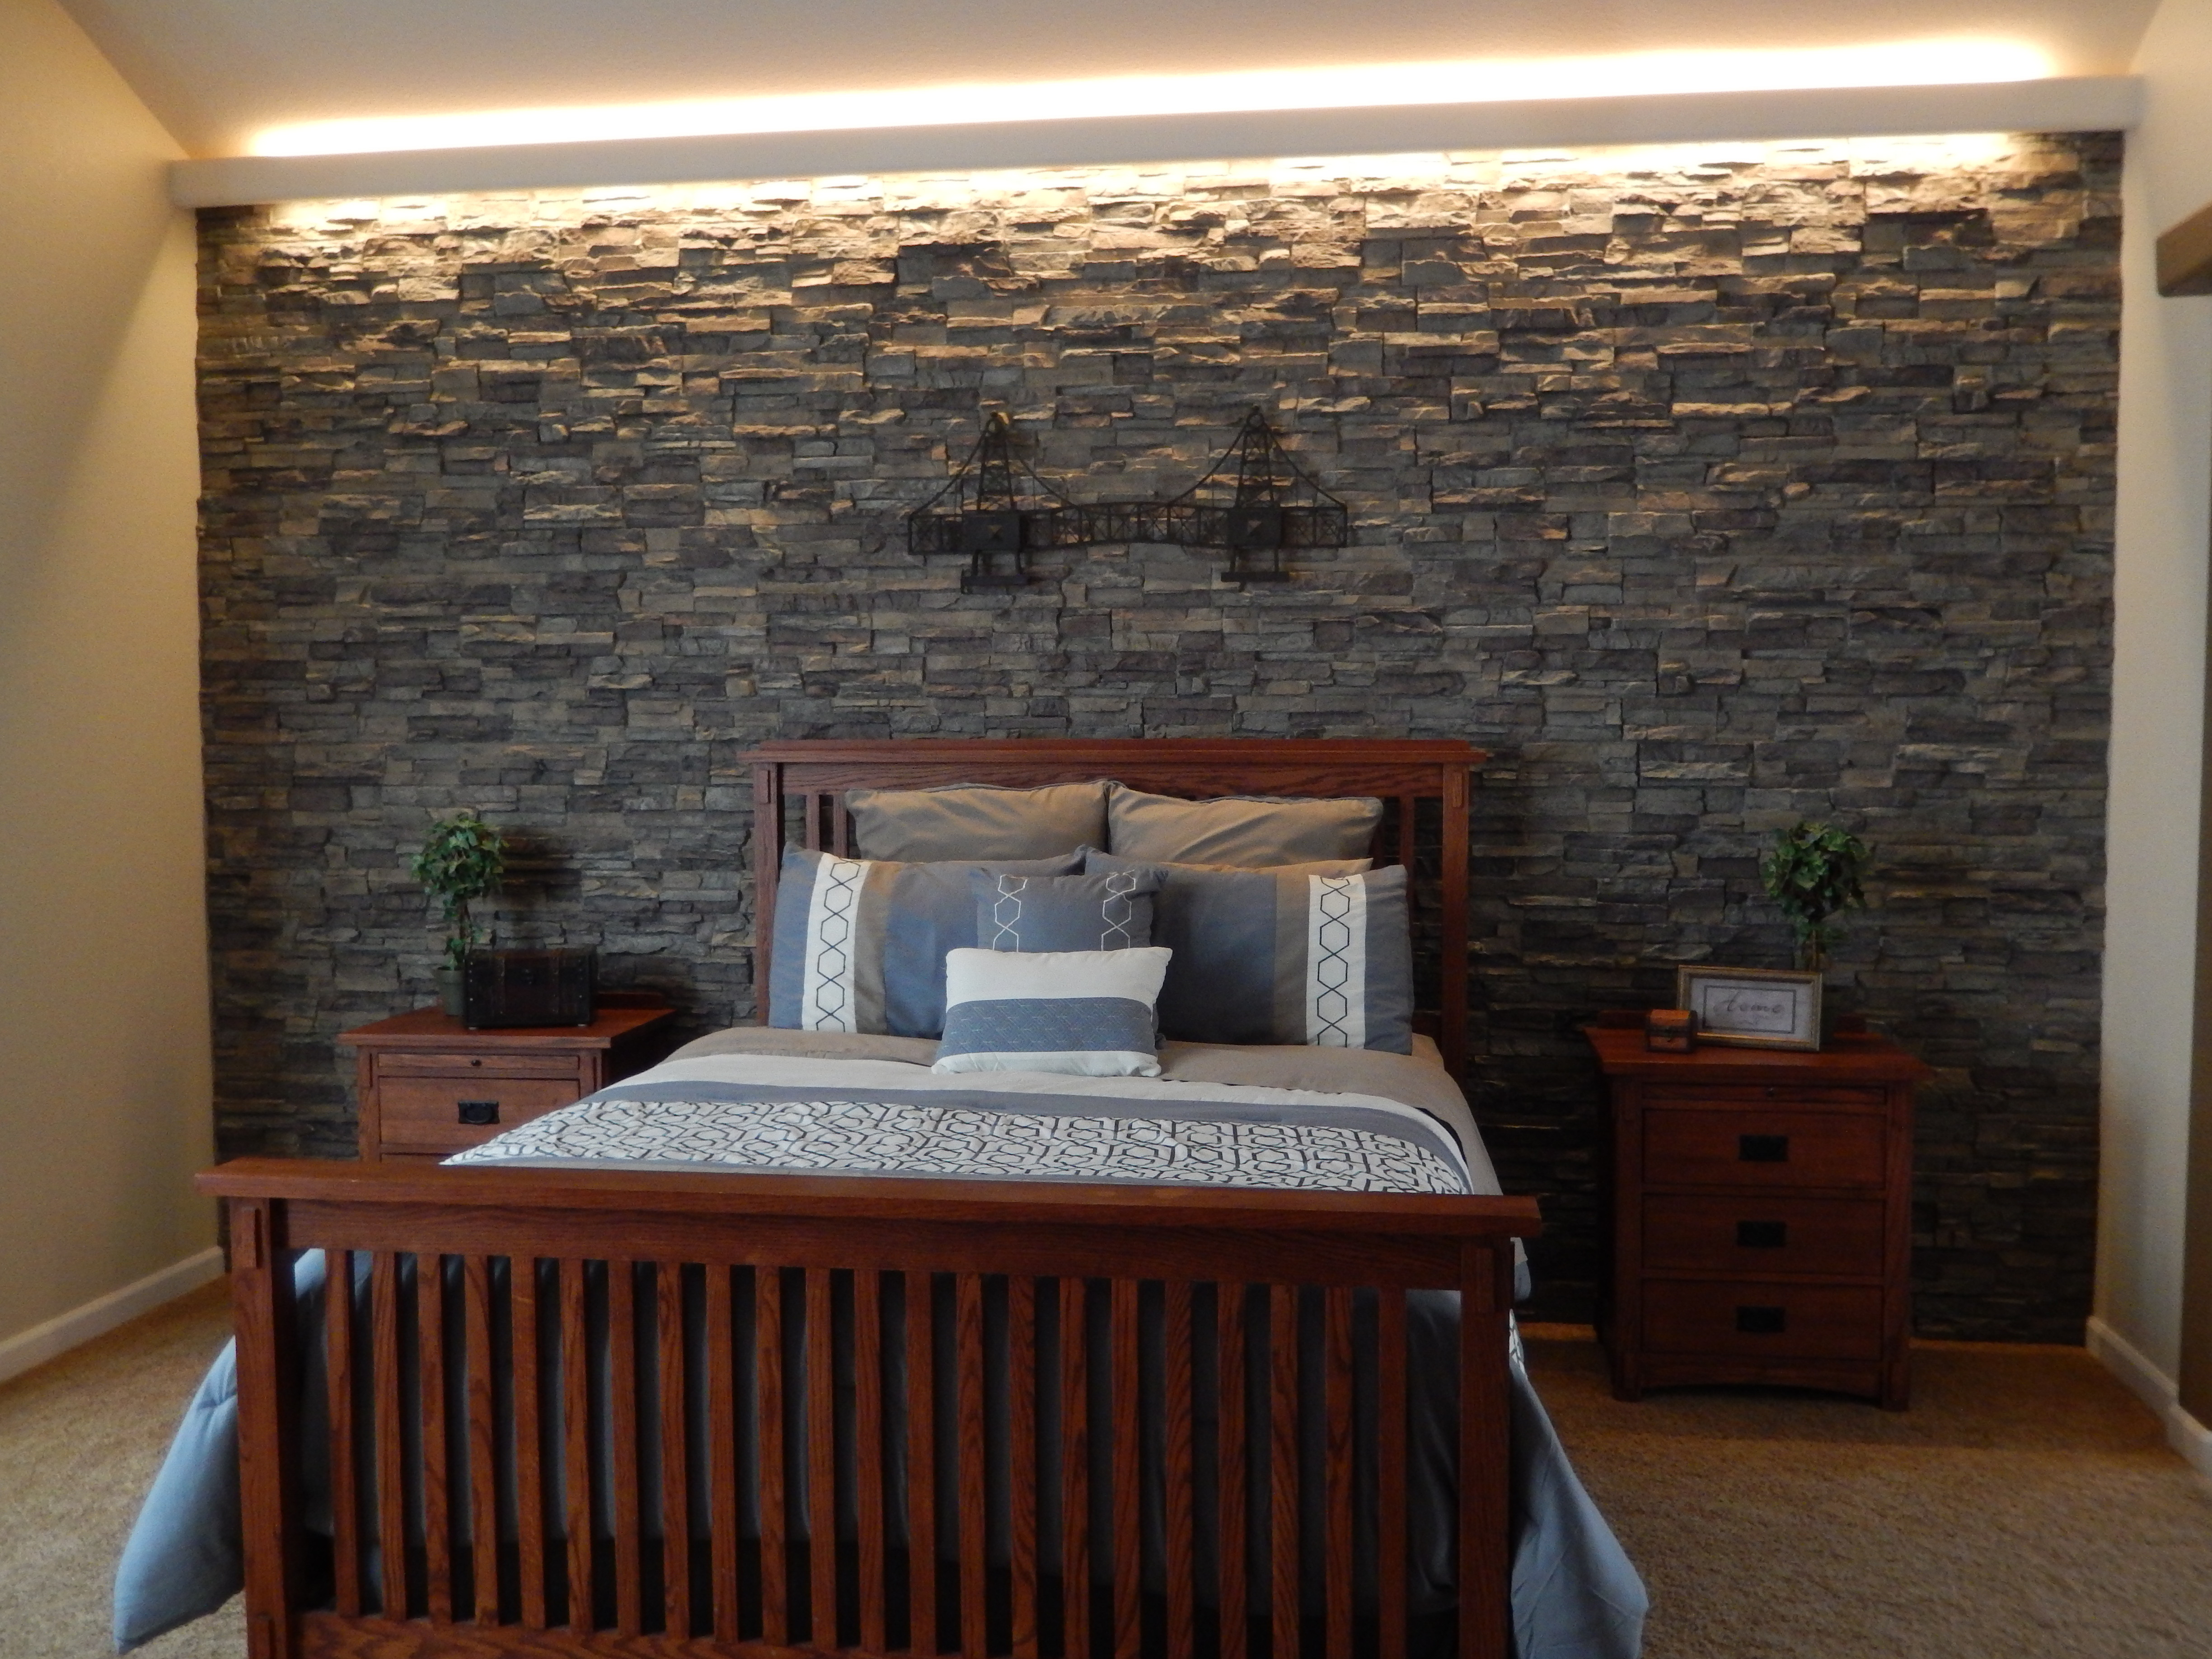 Best ideas about Stone Accent Wall . Save or Pin Splendid Stone Textured Accent Walls Now.